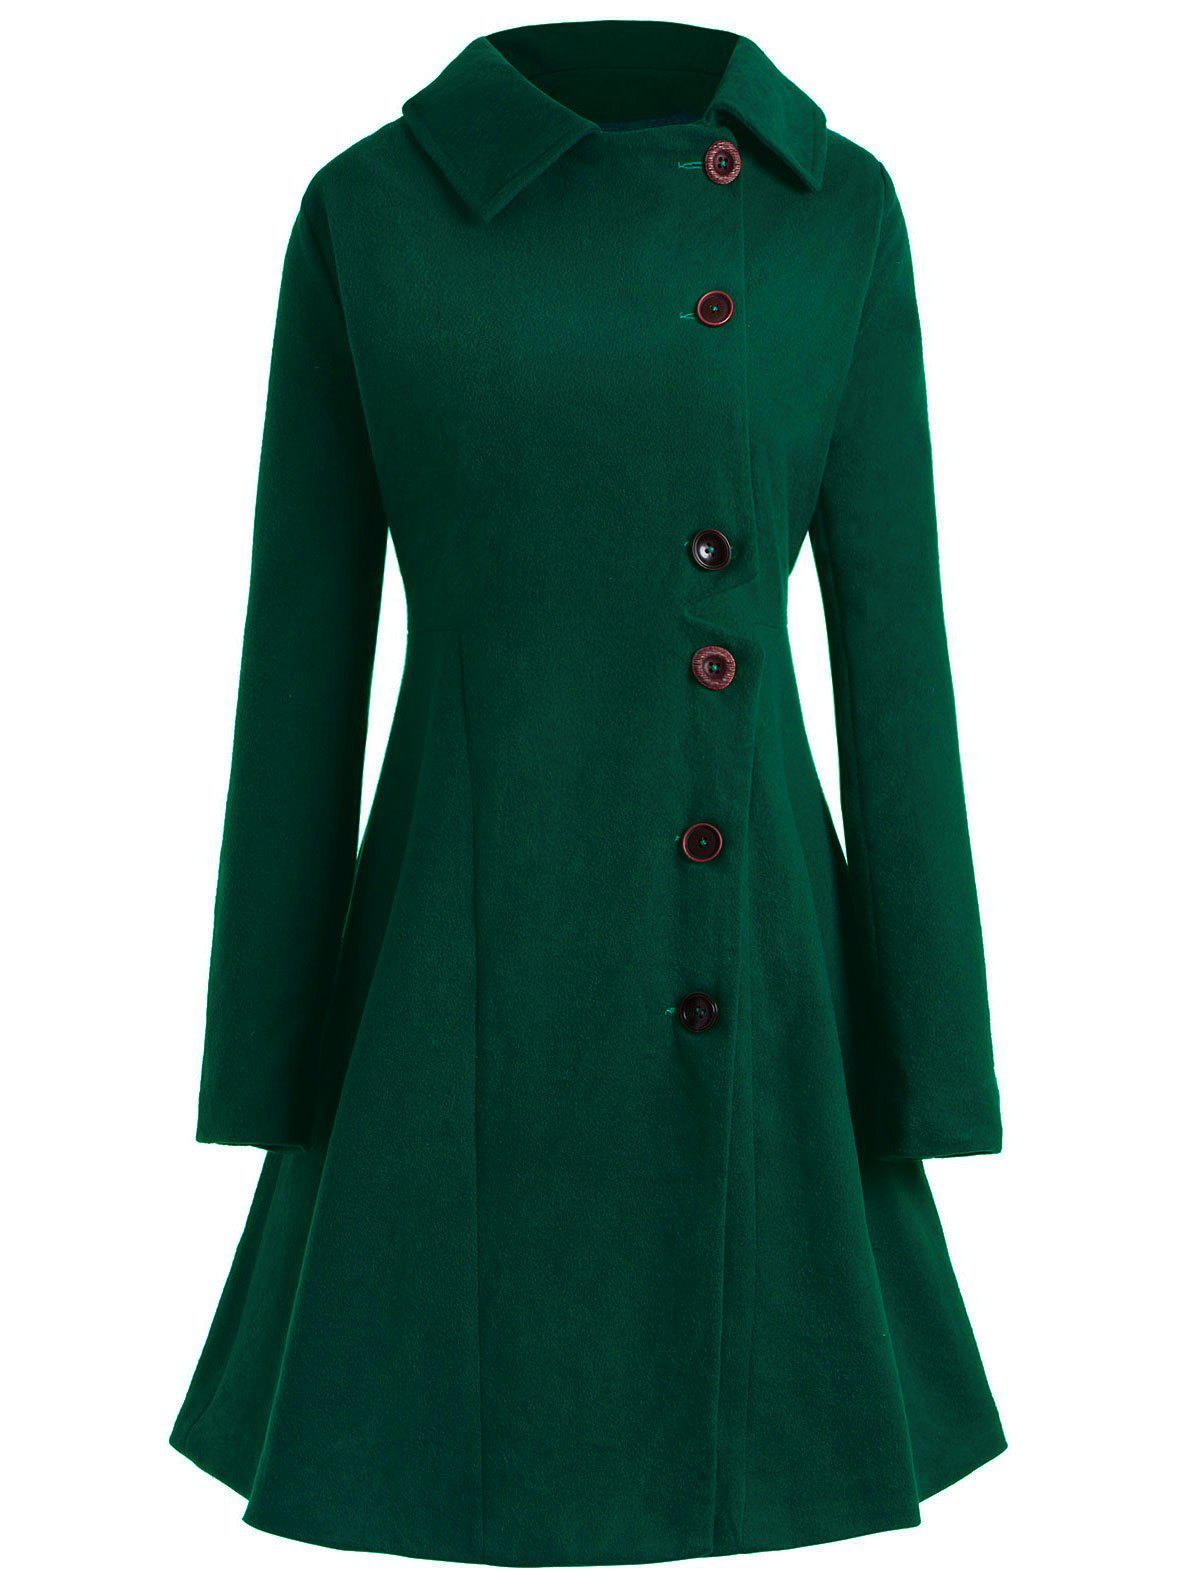 Plus Size Button Up Flare Coat - MEDIUM SEA GREEN 2X